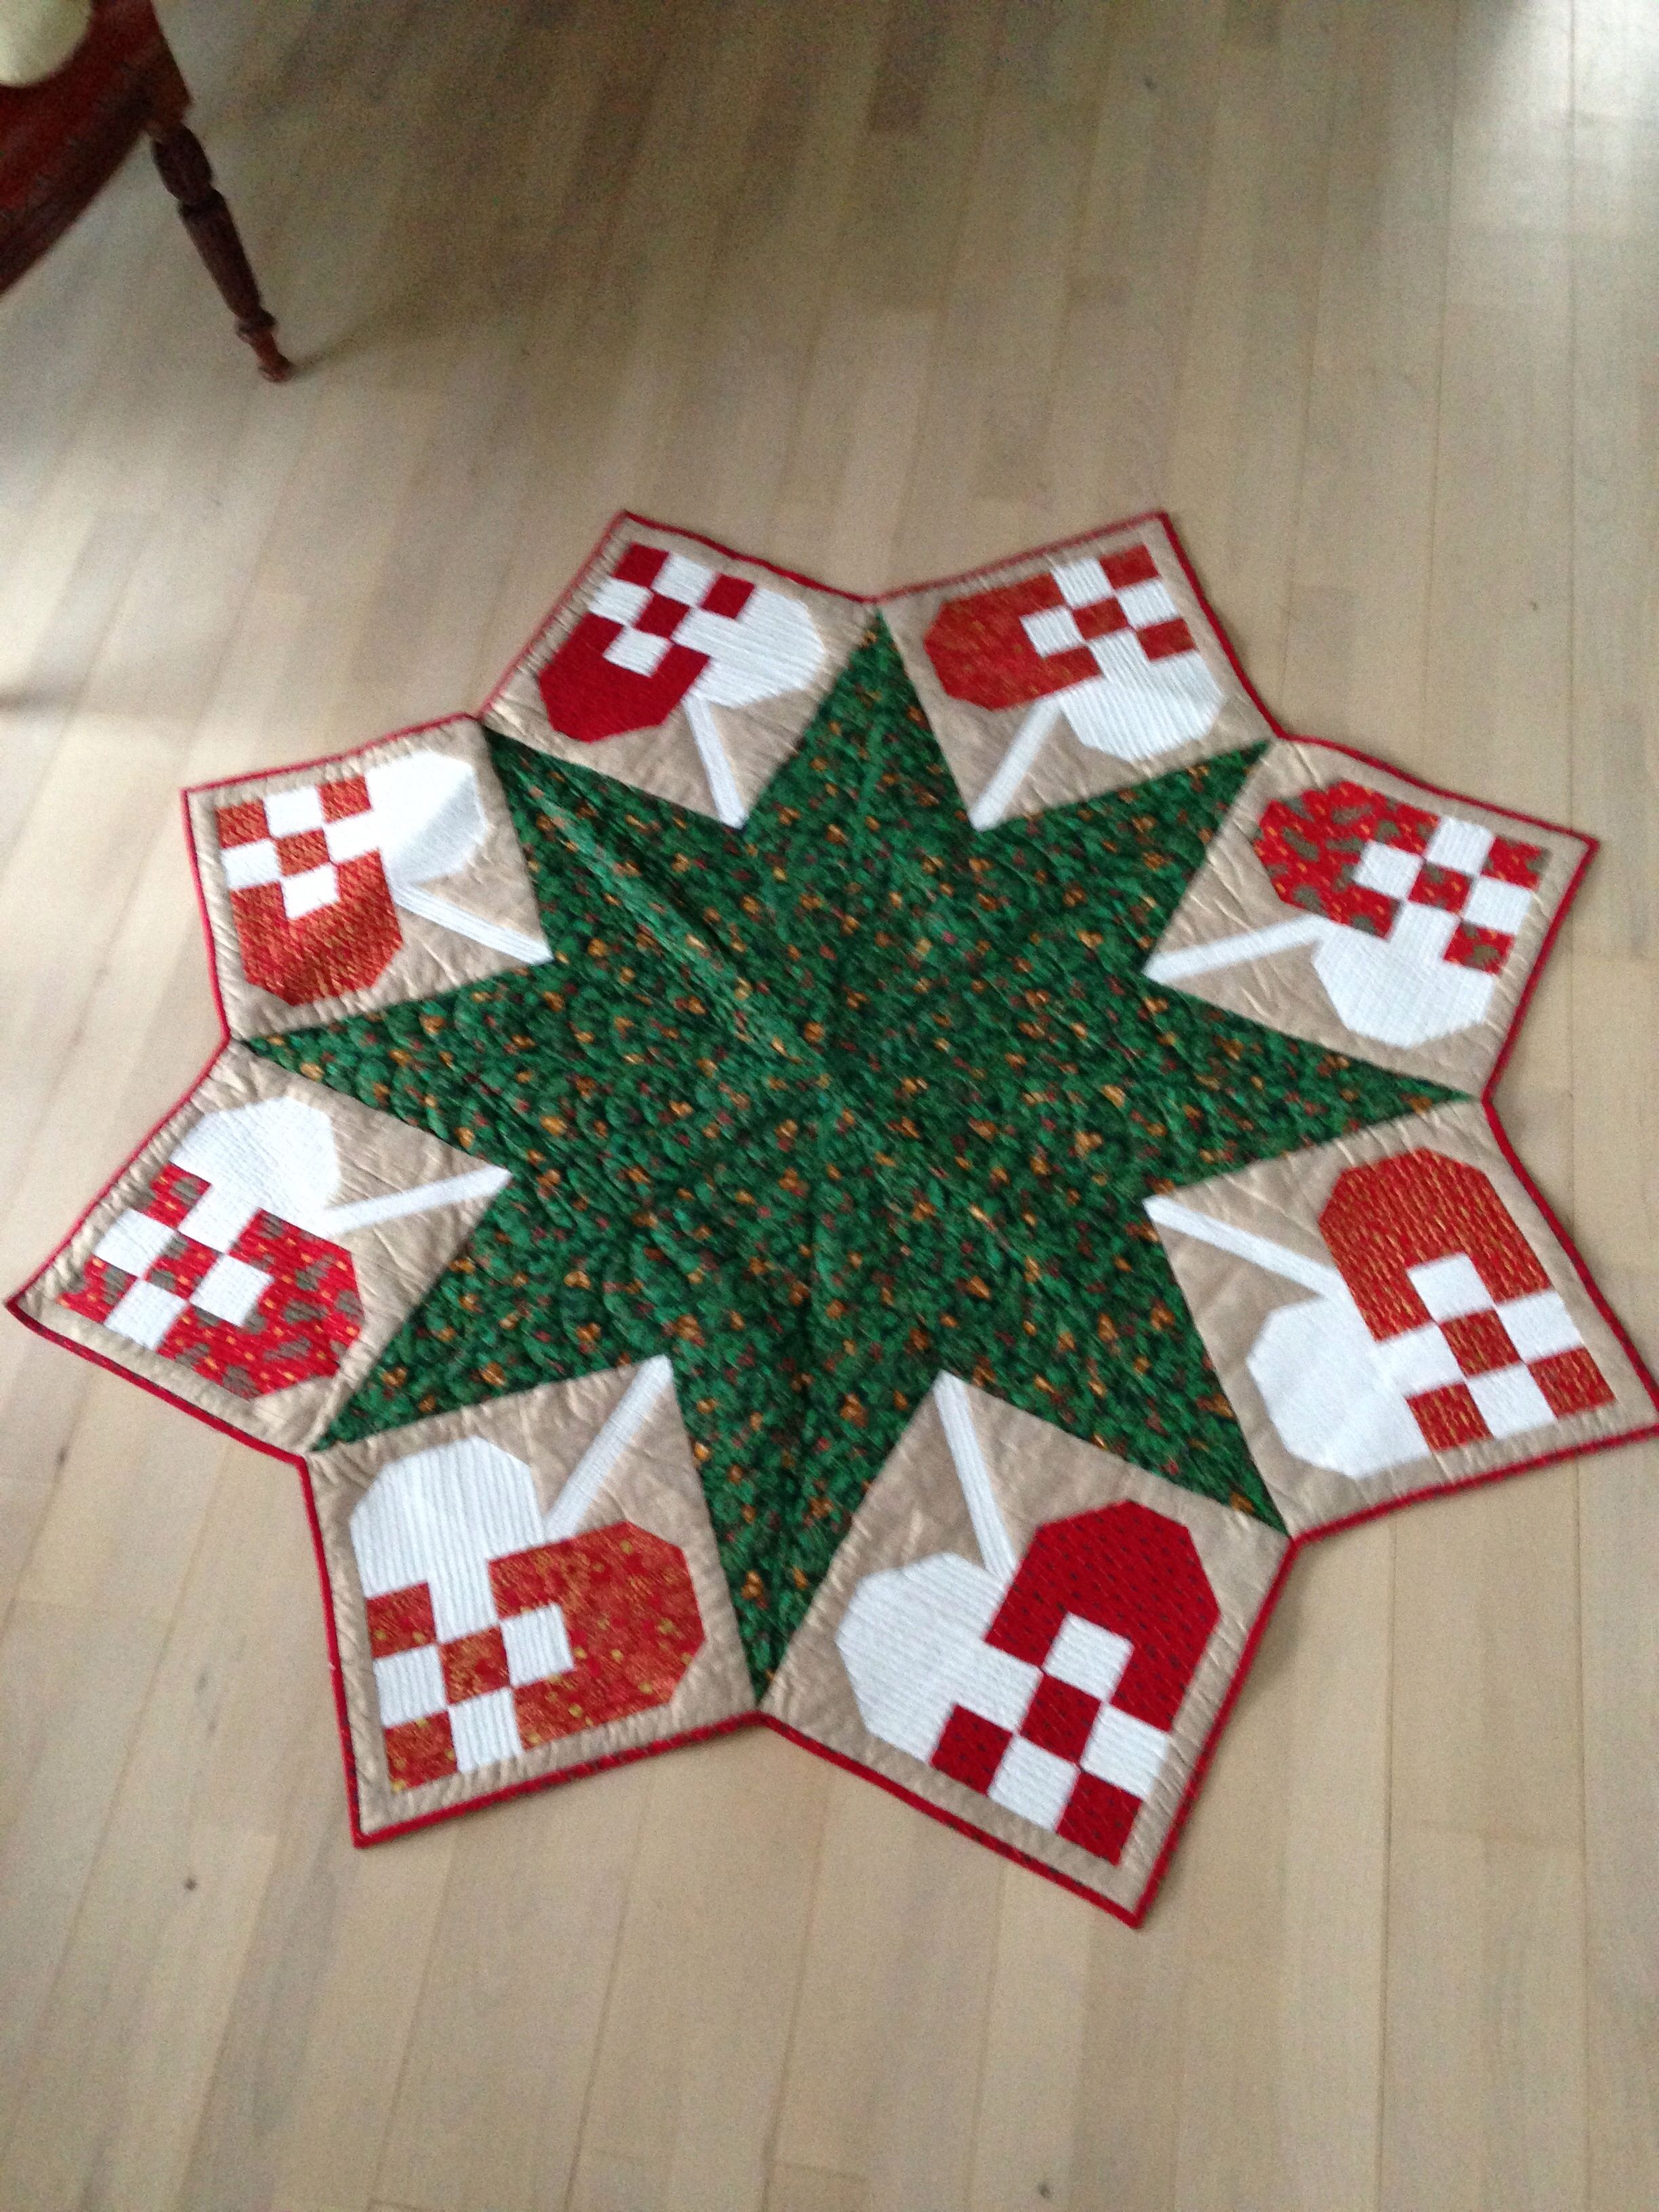 My Christmas tree skirt. … Christmas tree skirts